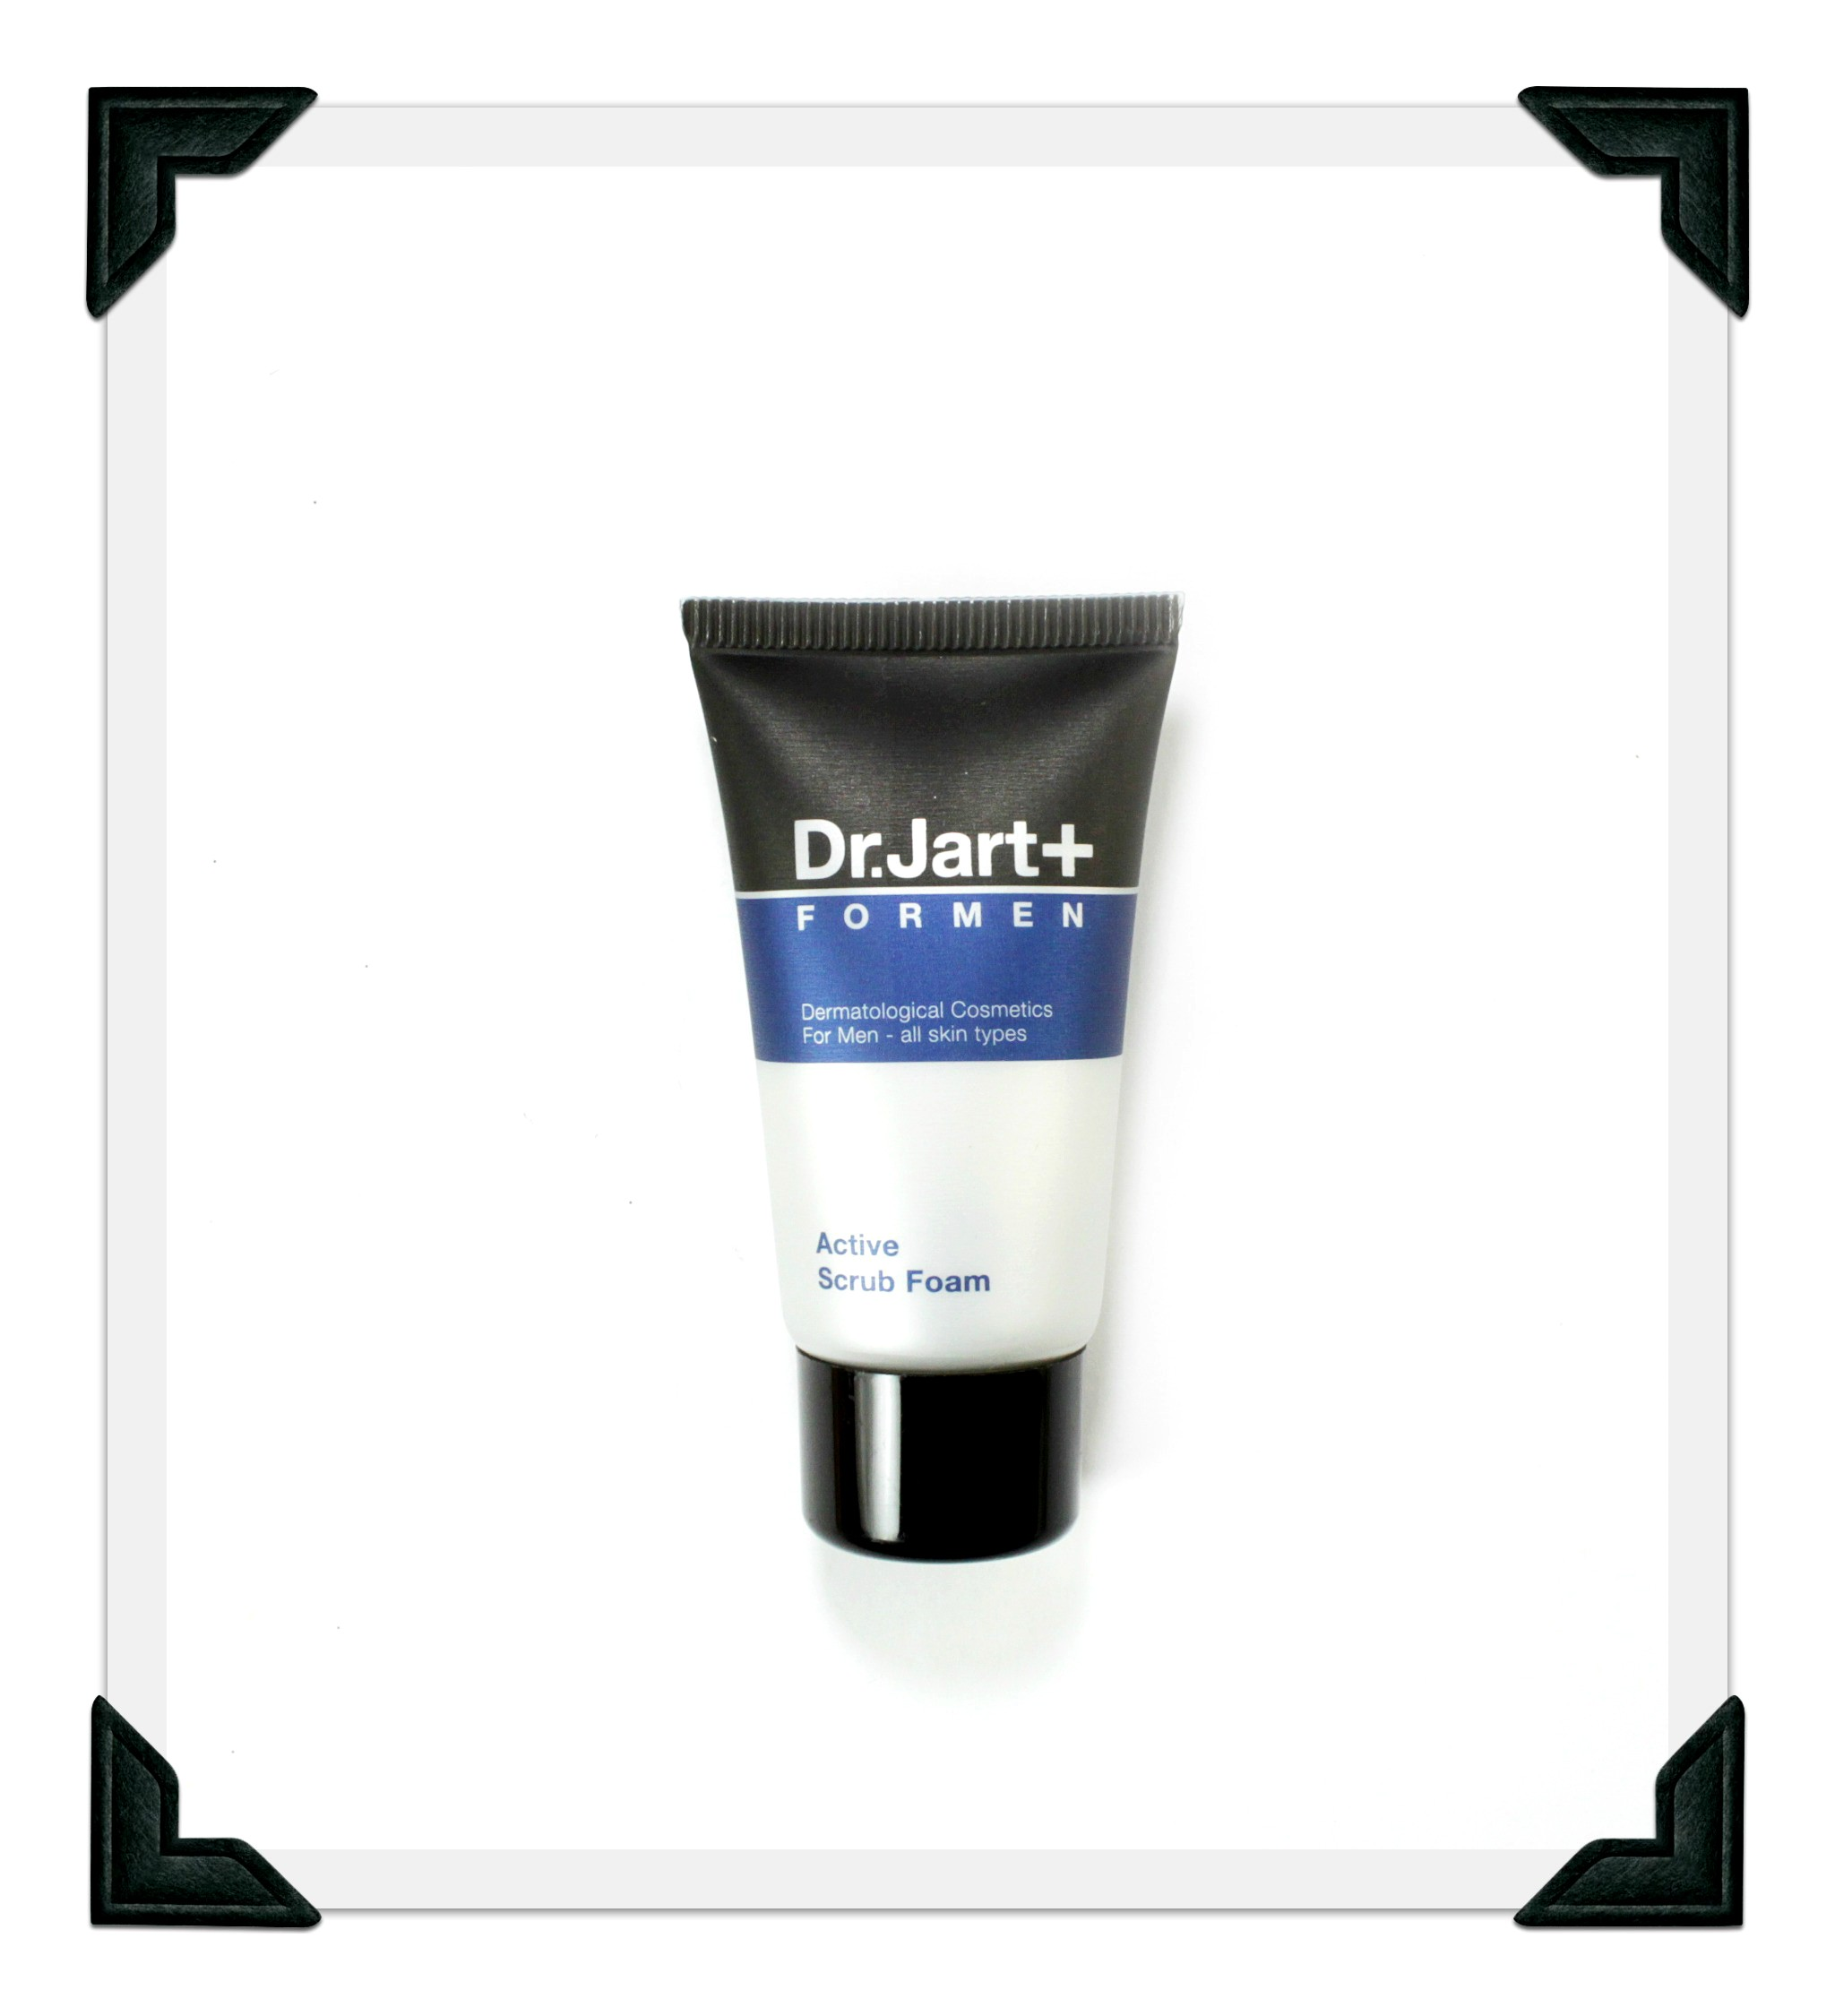 Dr.Jart+ Active Scrub Foam - For Men